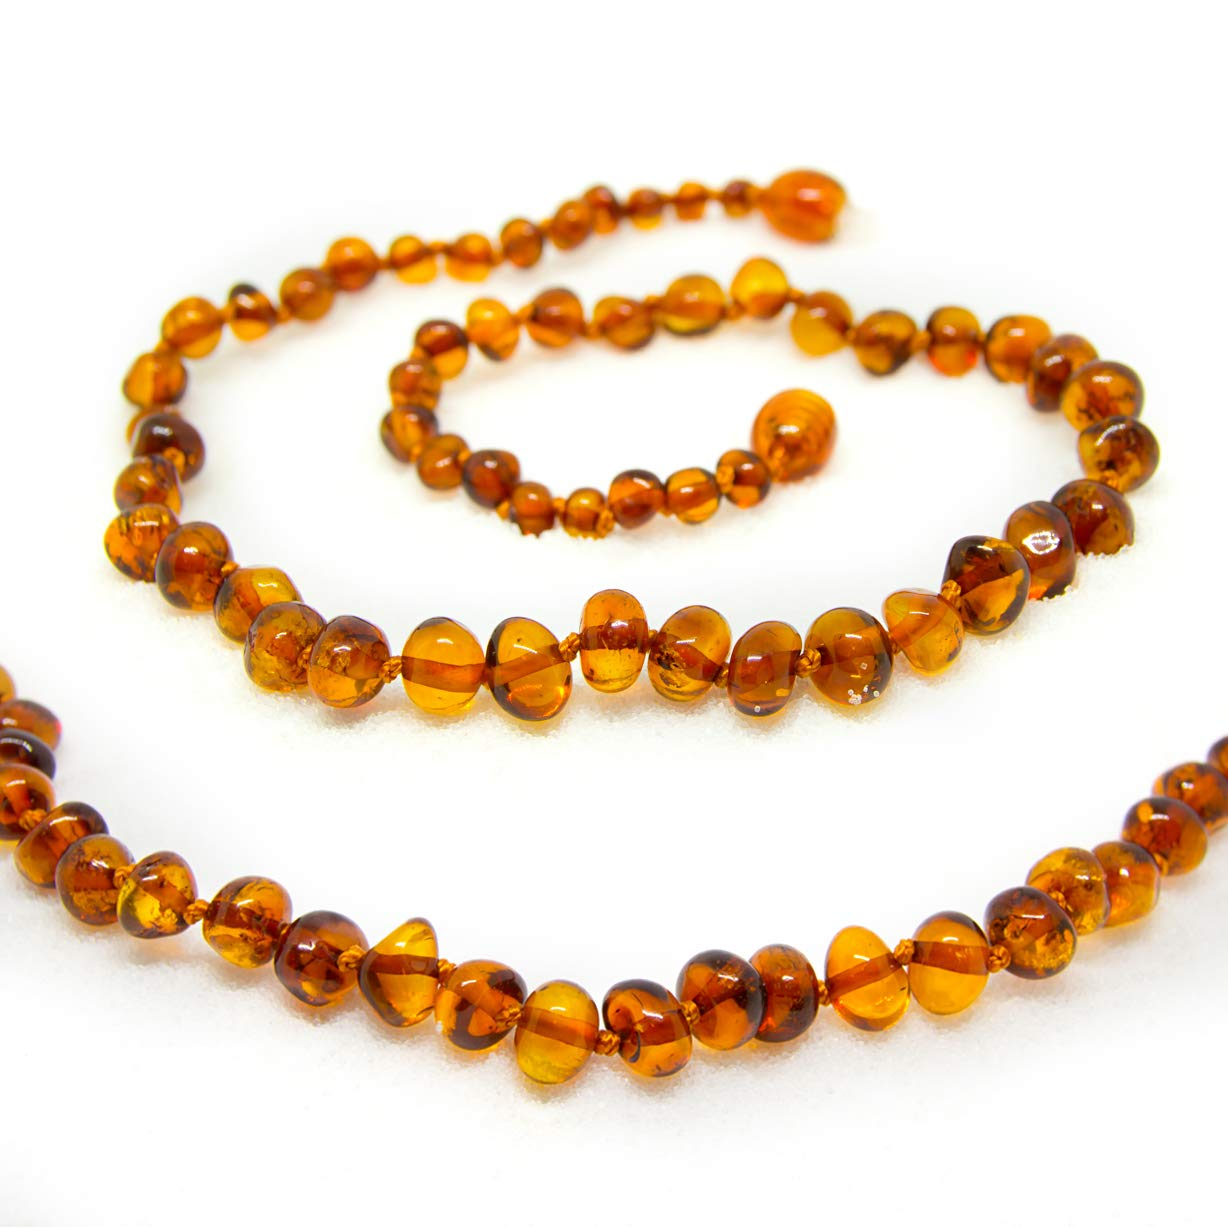 Certified Baltic Amber Necklace 25 Inch (honey) - Anti-inflammatory by The Art of Cure